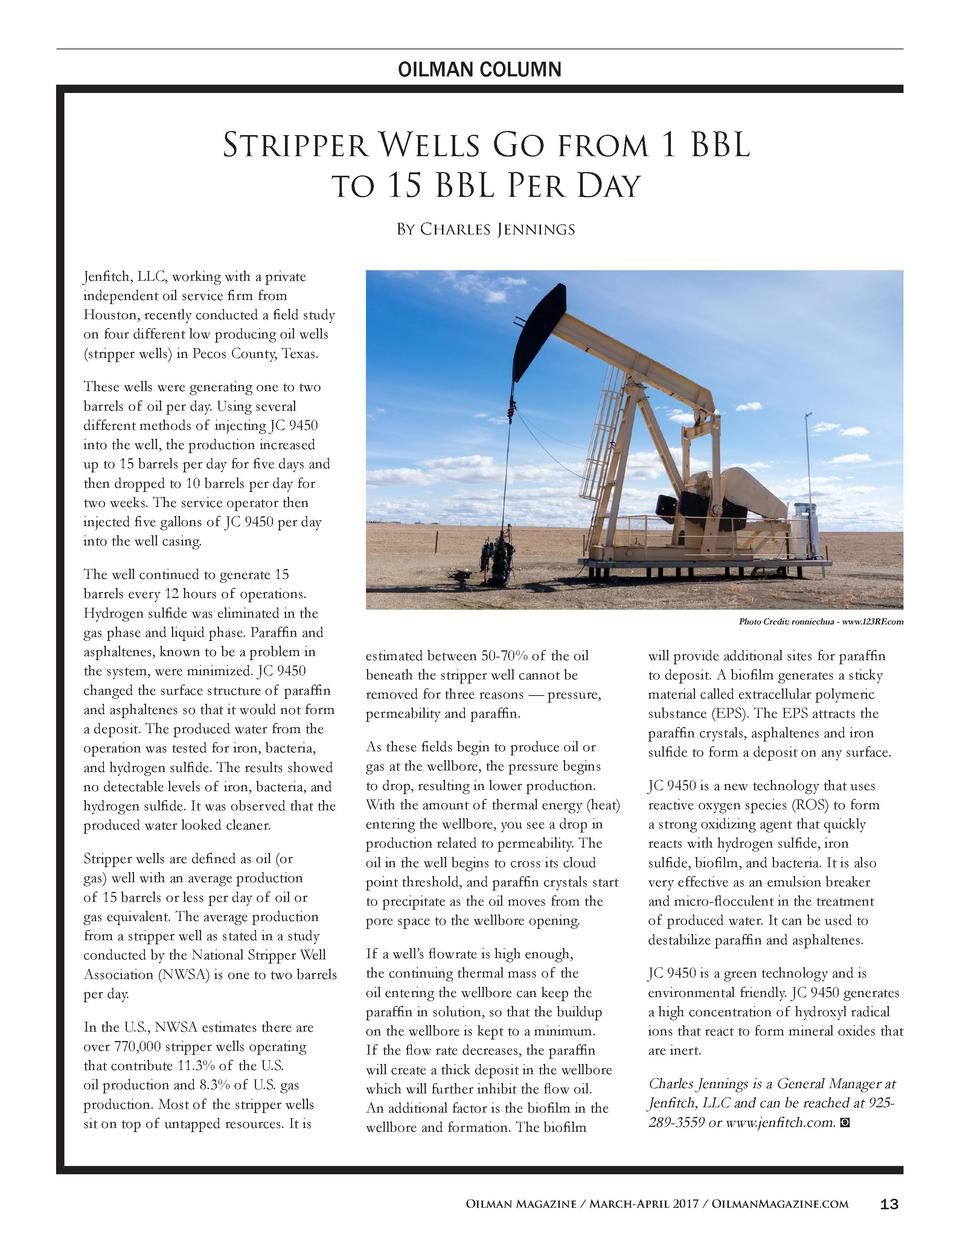 OILMAN COLUMN  Stripper Wells Go from 1 BBL to 15 BBL Per Day By Charles Jennings Jenfitch, LLC, working with a private in...